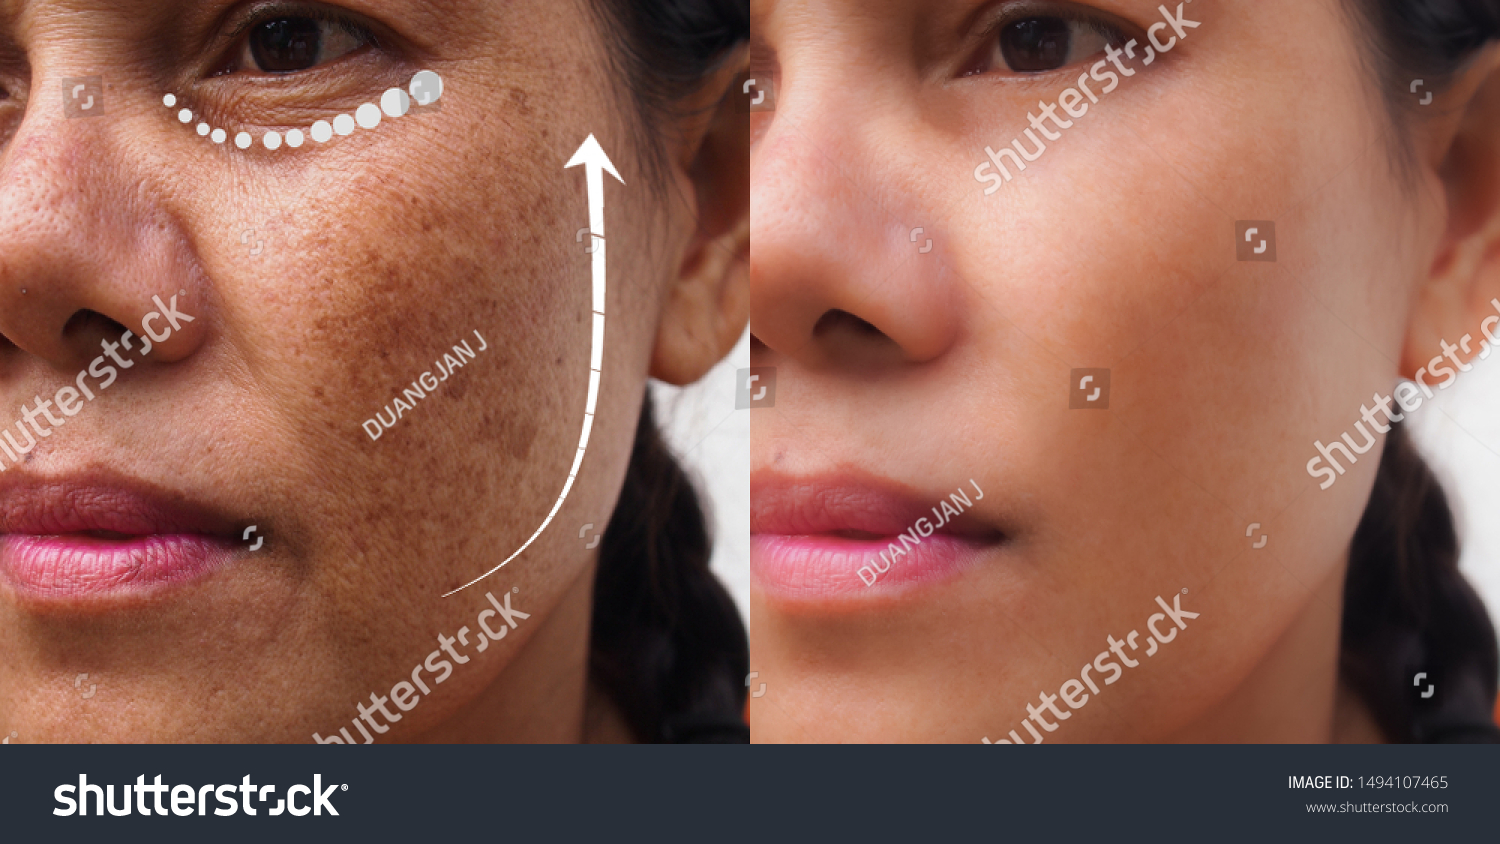 Image Before After Anti Aging Dark Stock Photo Edit Now 1494107465